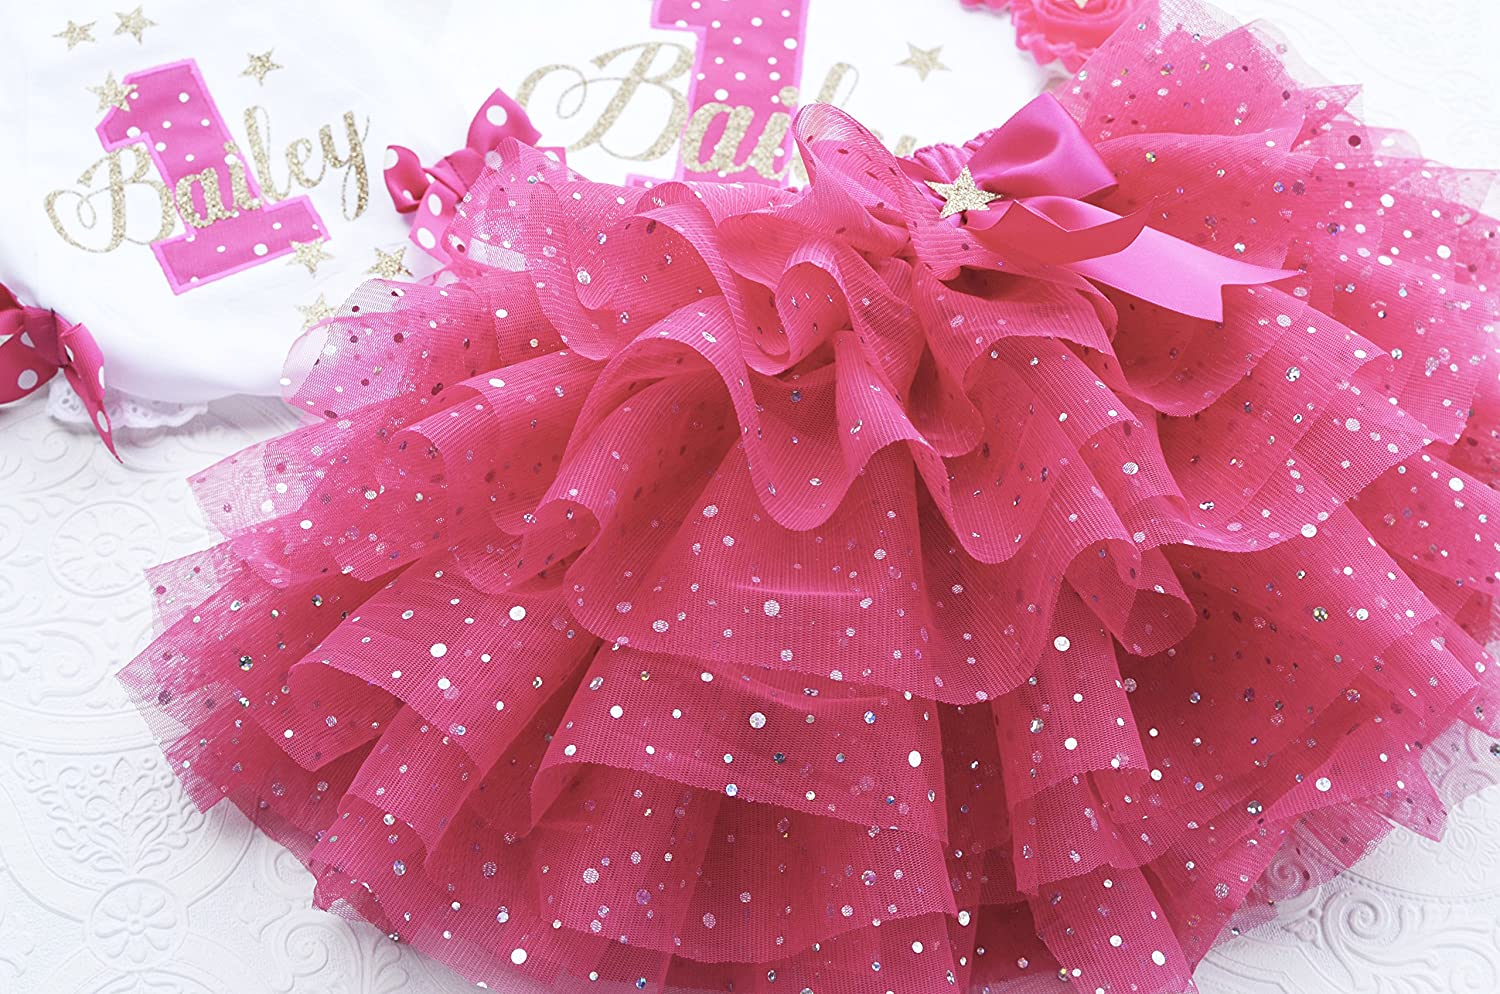 Baby girl first birthday outfit,pink silver 1st birthday outfit,first birthday outfit,Cake smash outfit girl,princess birthday outfit girl,twinkle twinkle little star birthday outfit